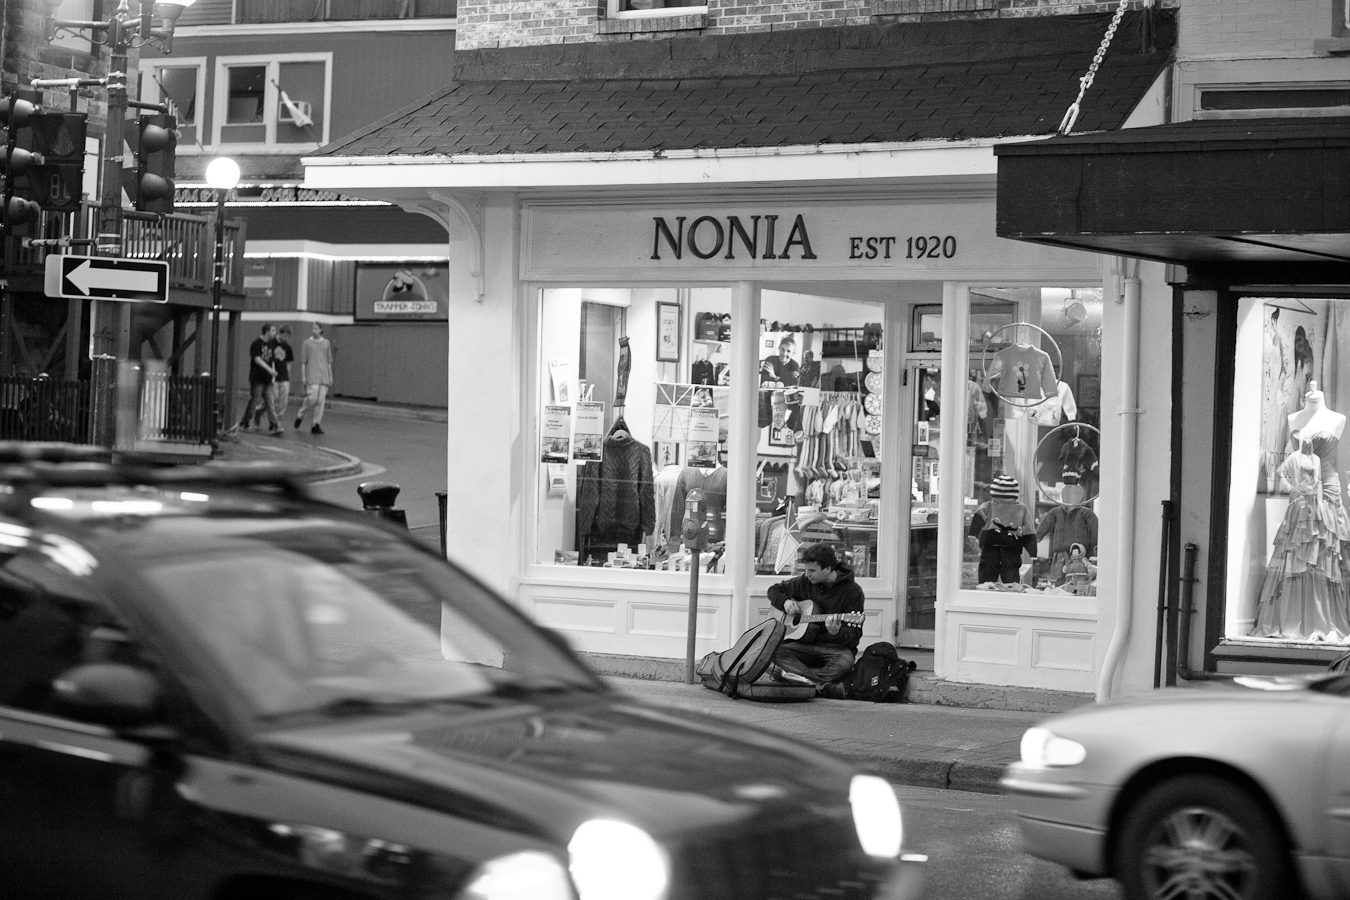 Nonia Busker shot by D. EDWARDS for A City Like Ours